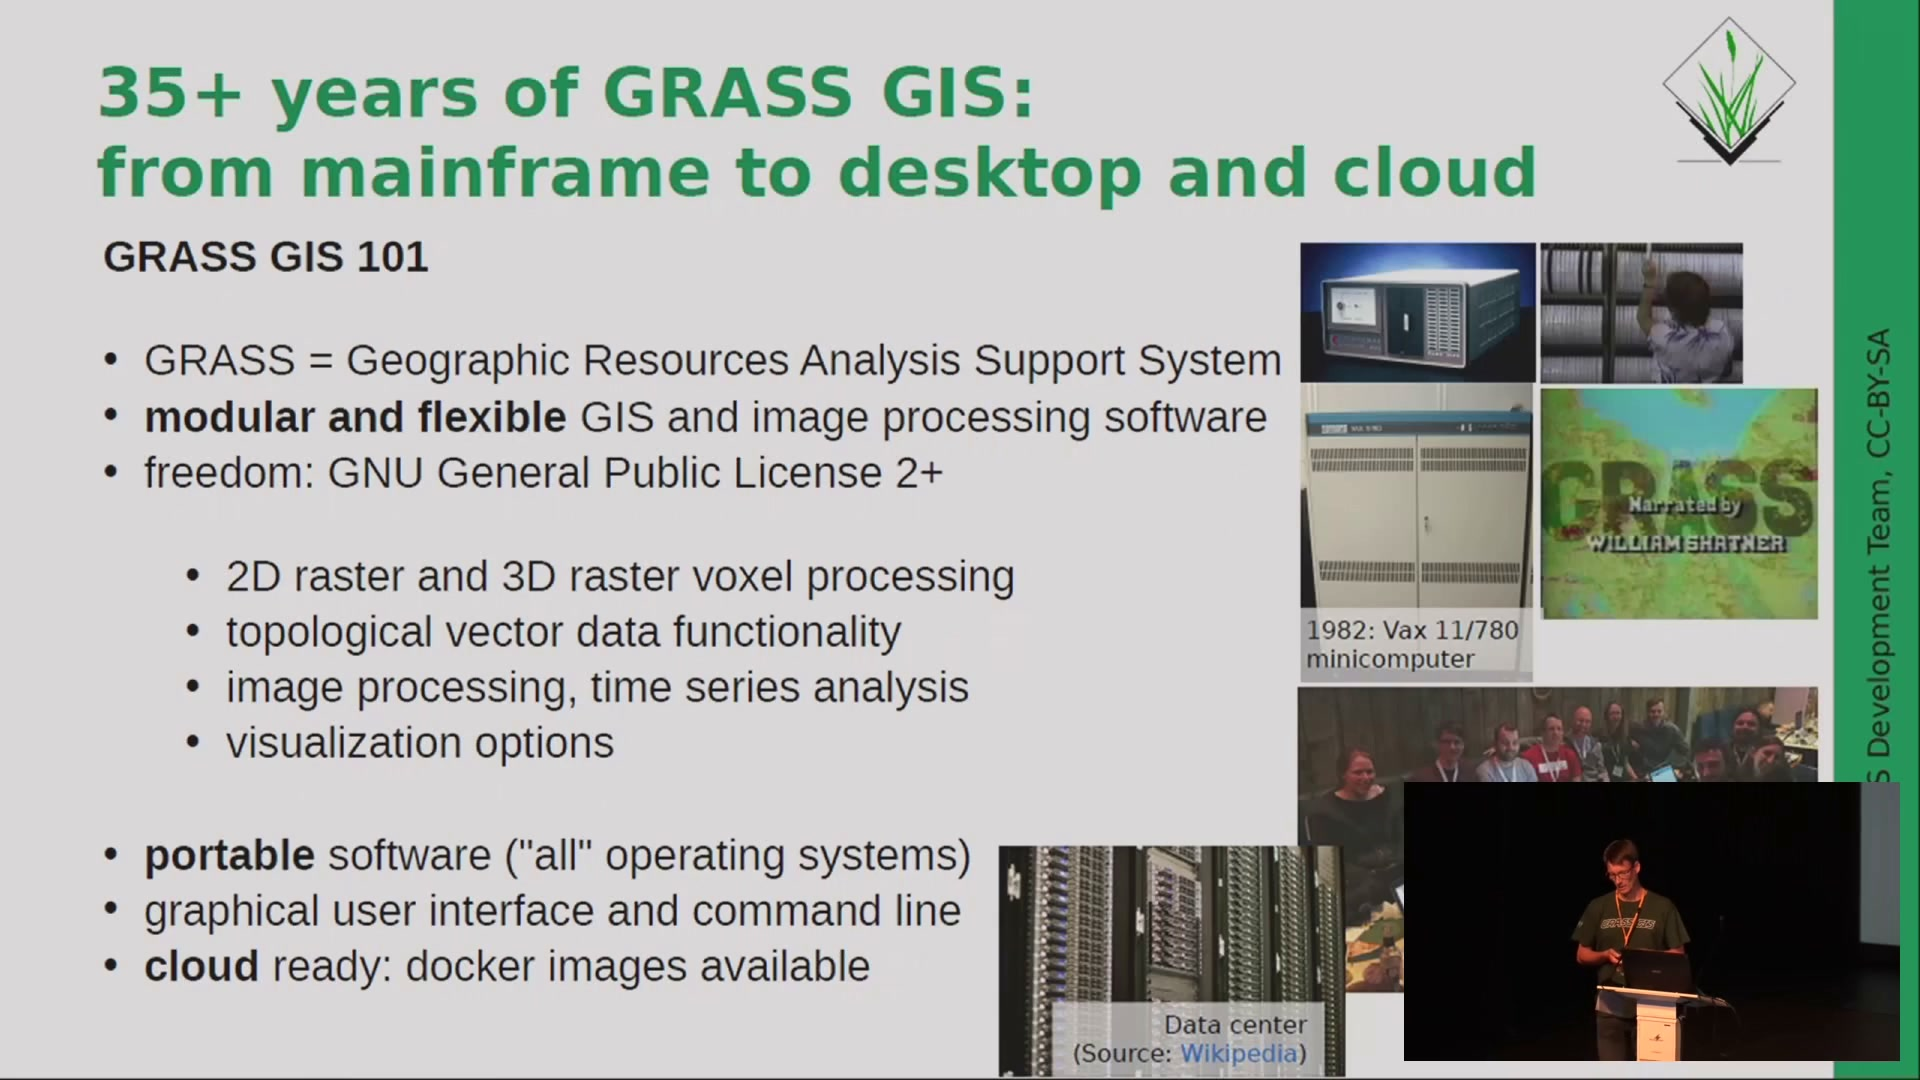 media ccc de - State of GRASS GIS Project: 35 years is nothing!